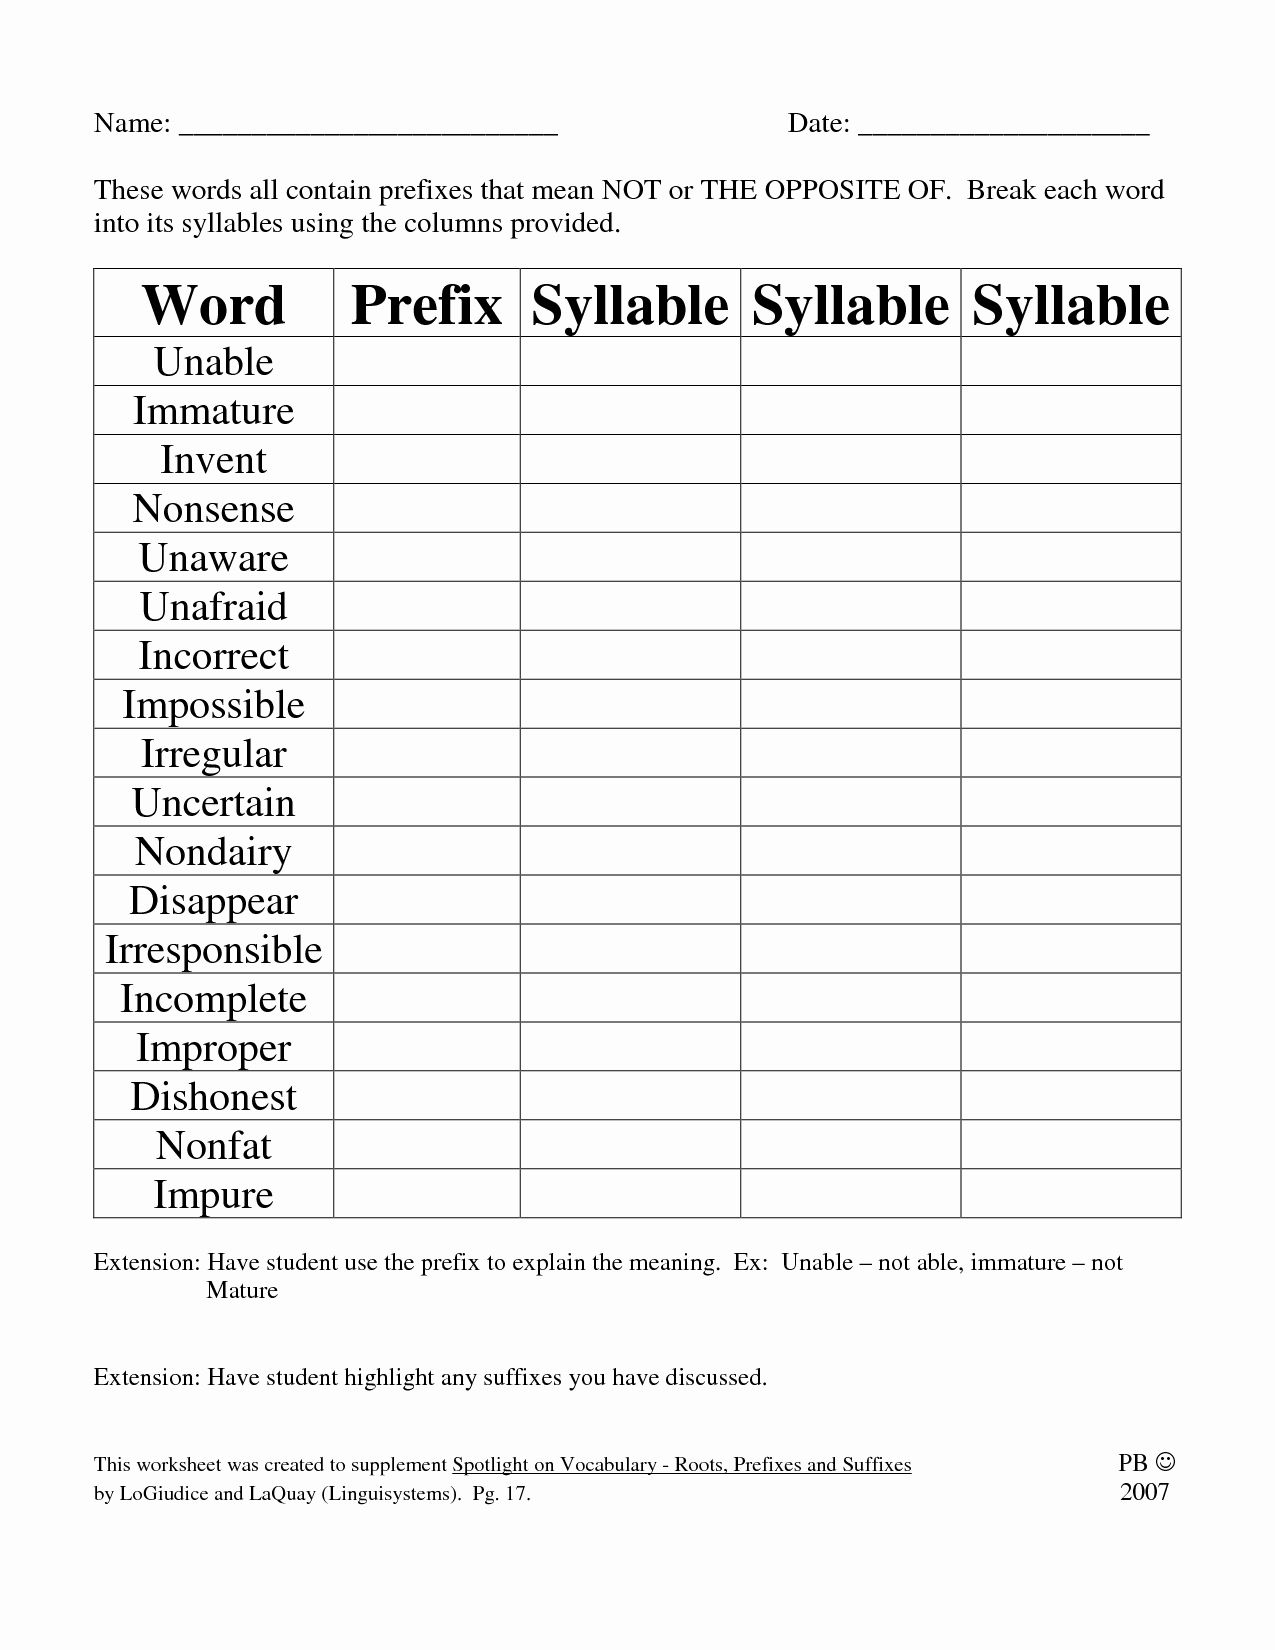 50 Prefixes And Suffixes Worksheet In